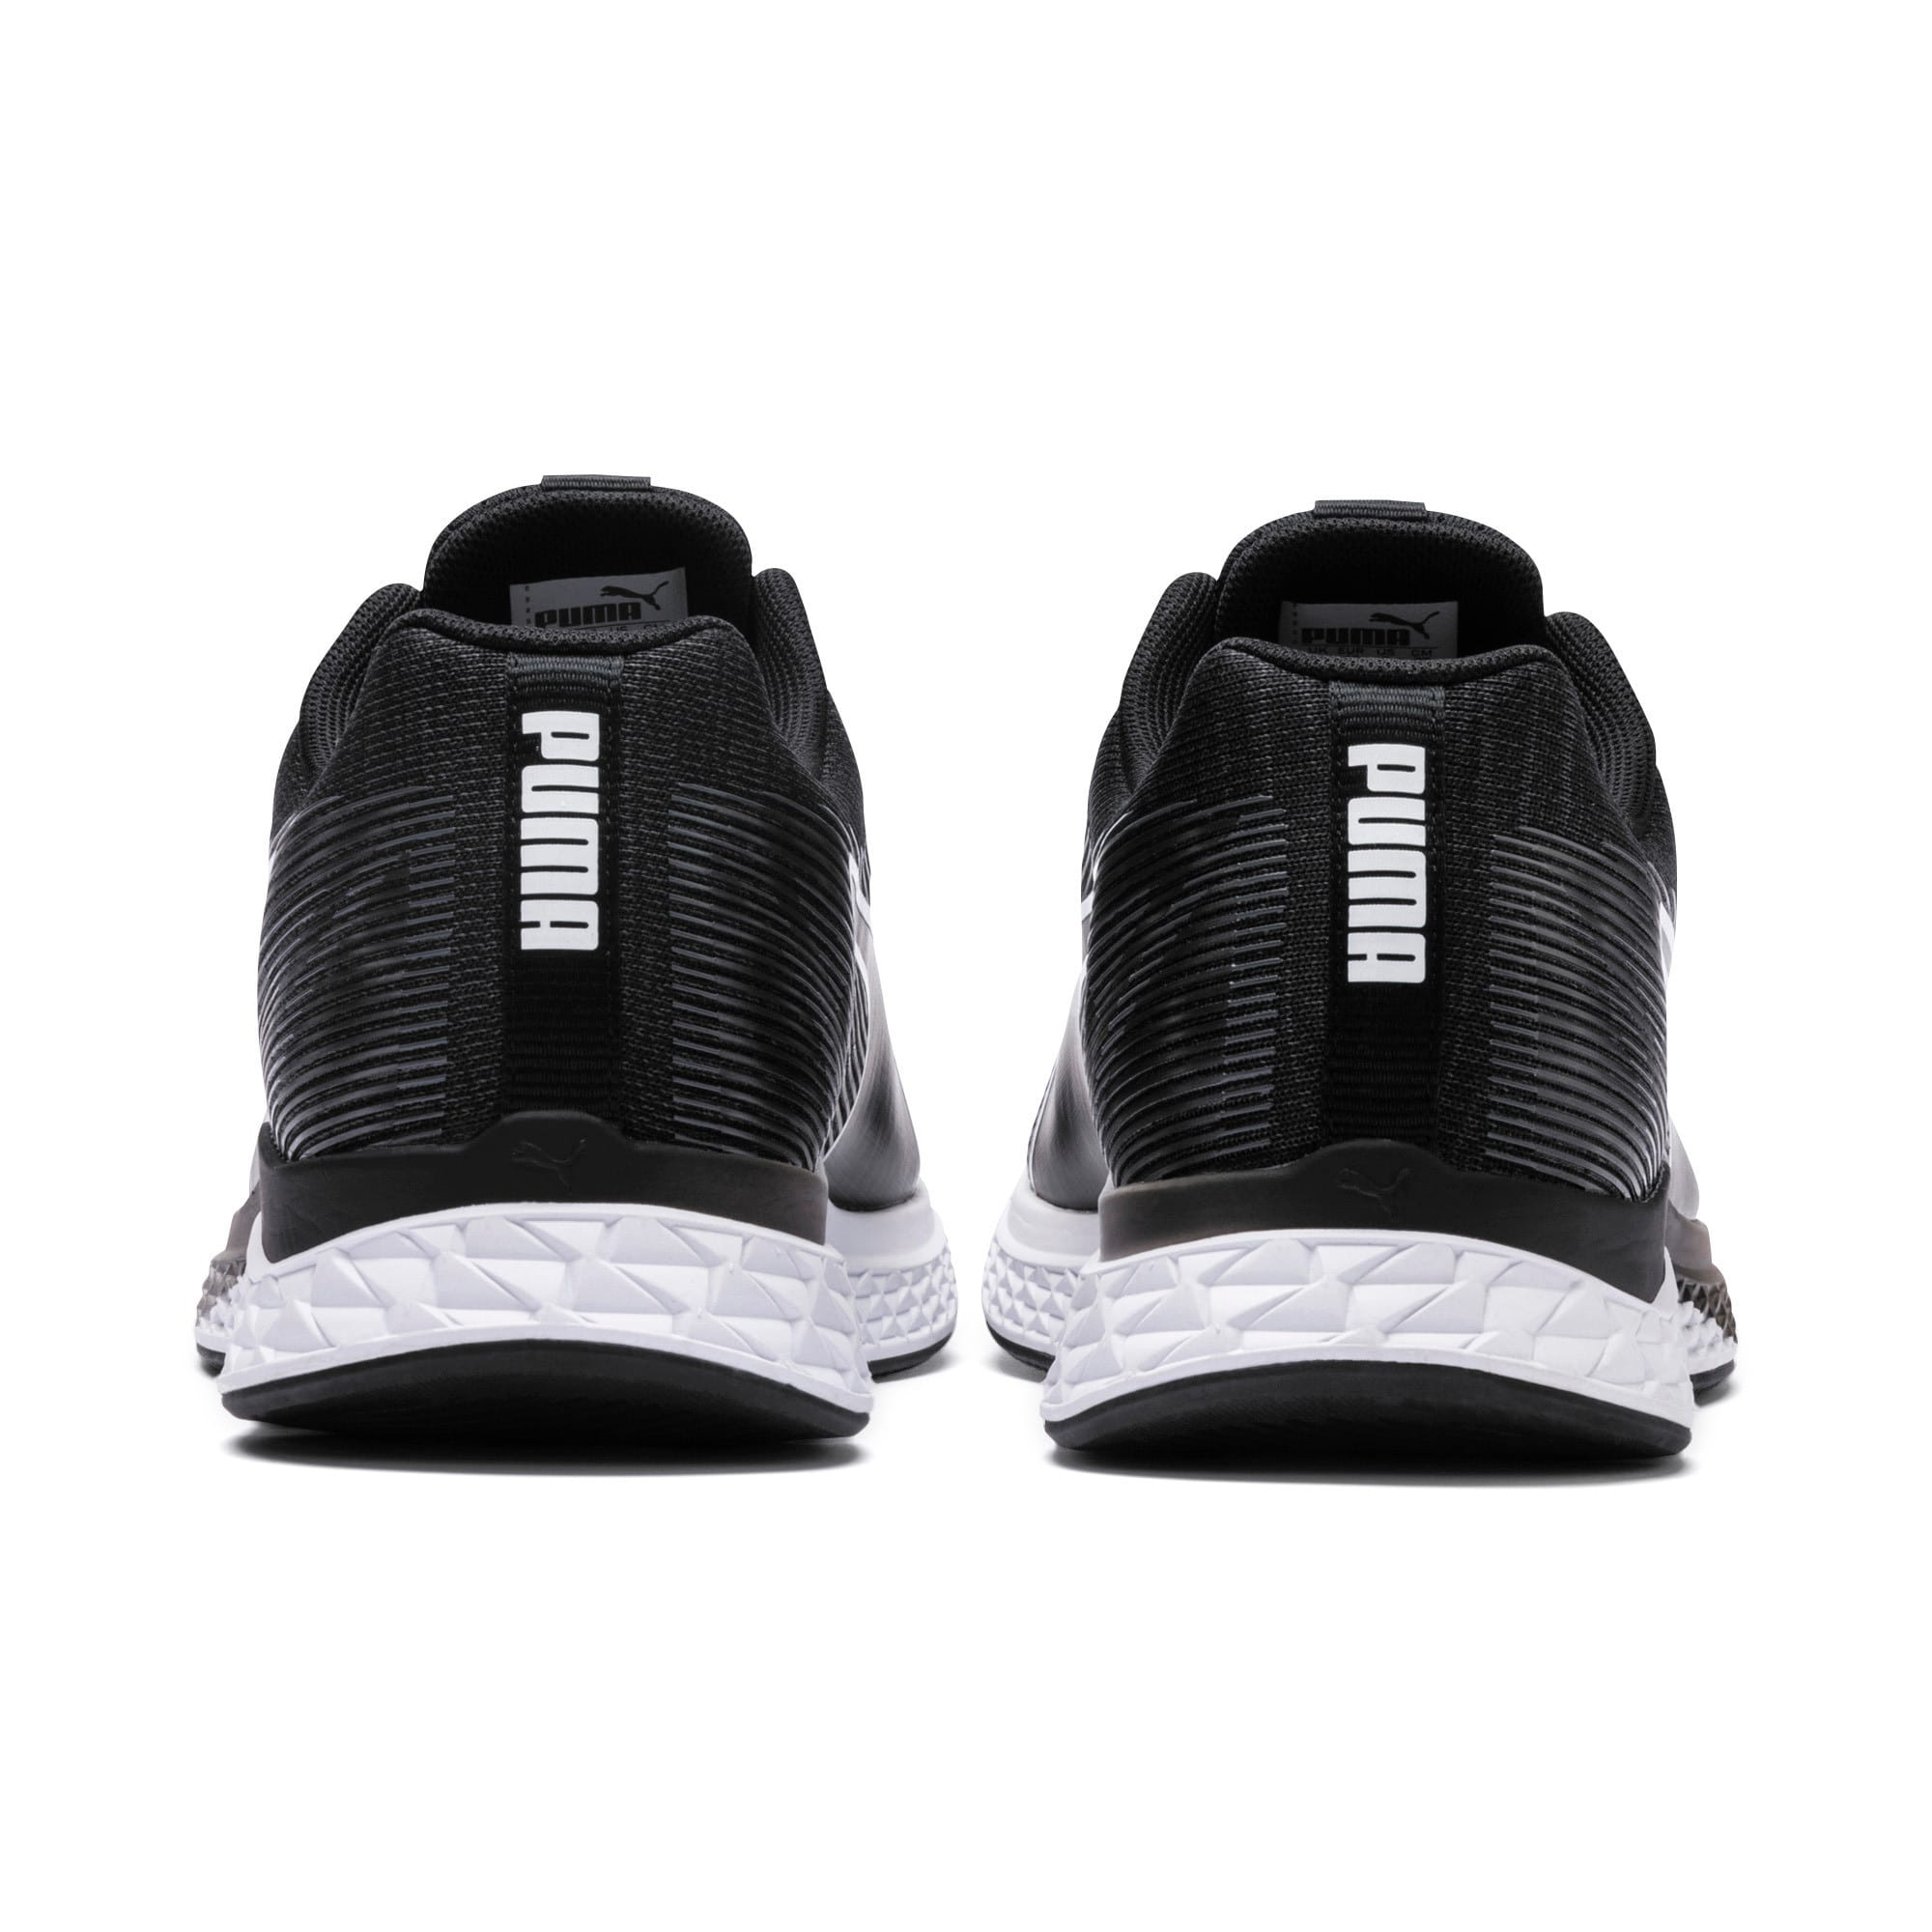 Thumbnail 3 of SPEED SUTAMINA Running Shoes, Puma Black-Puma White, medium